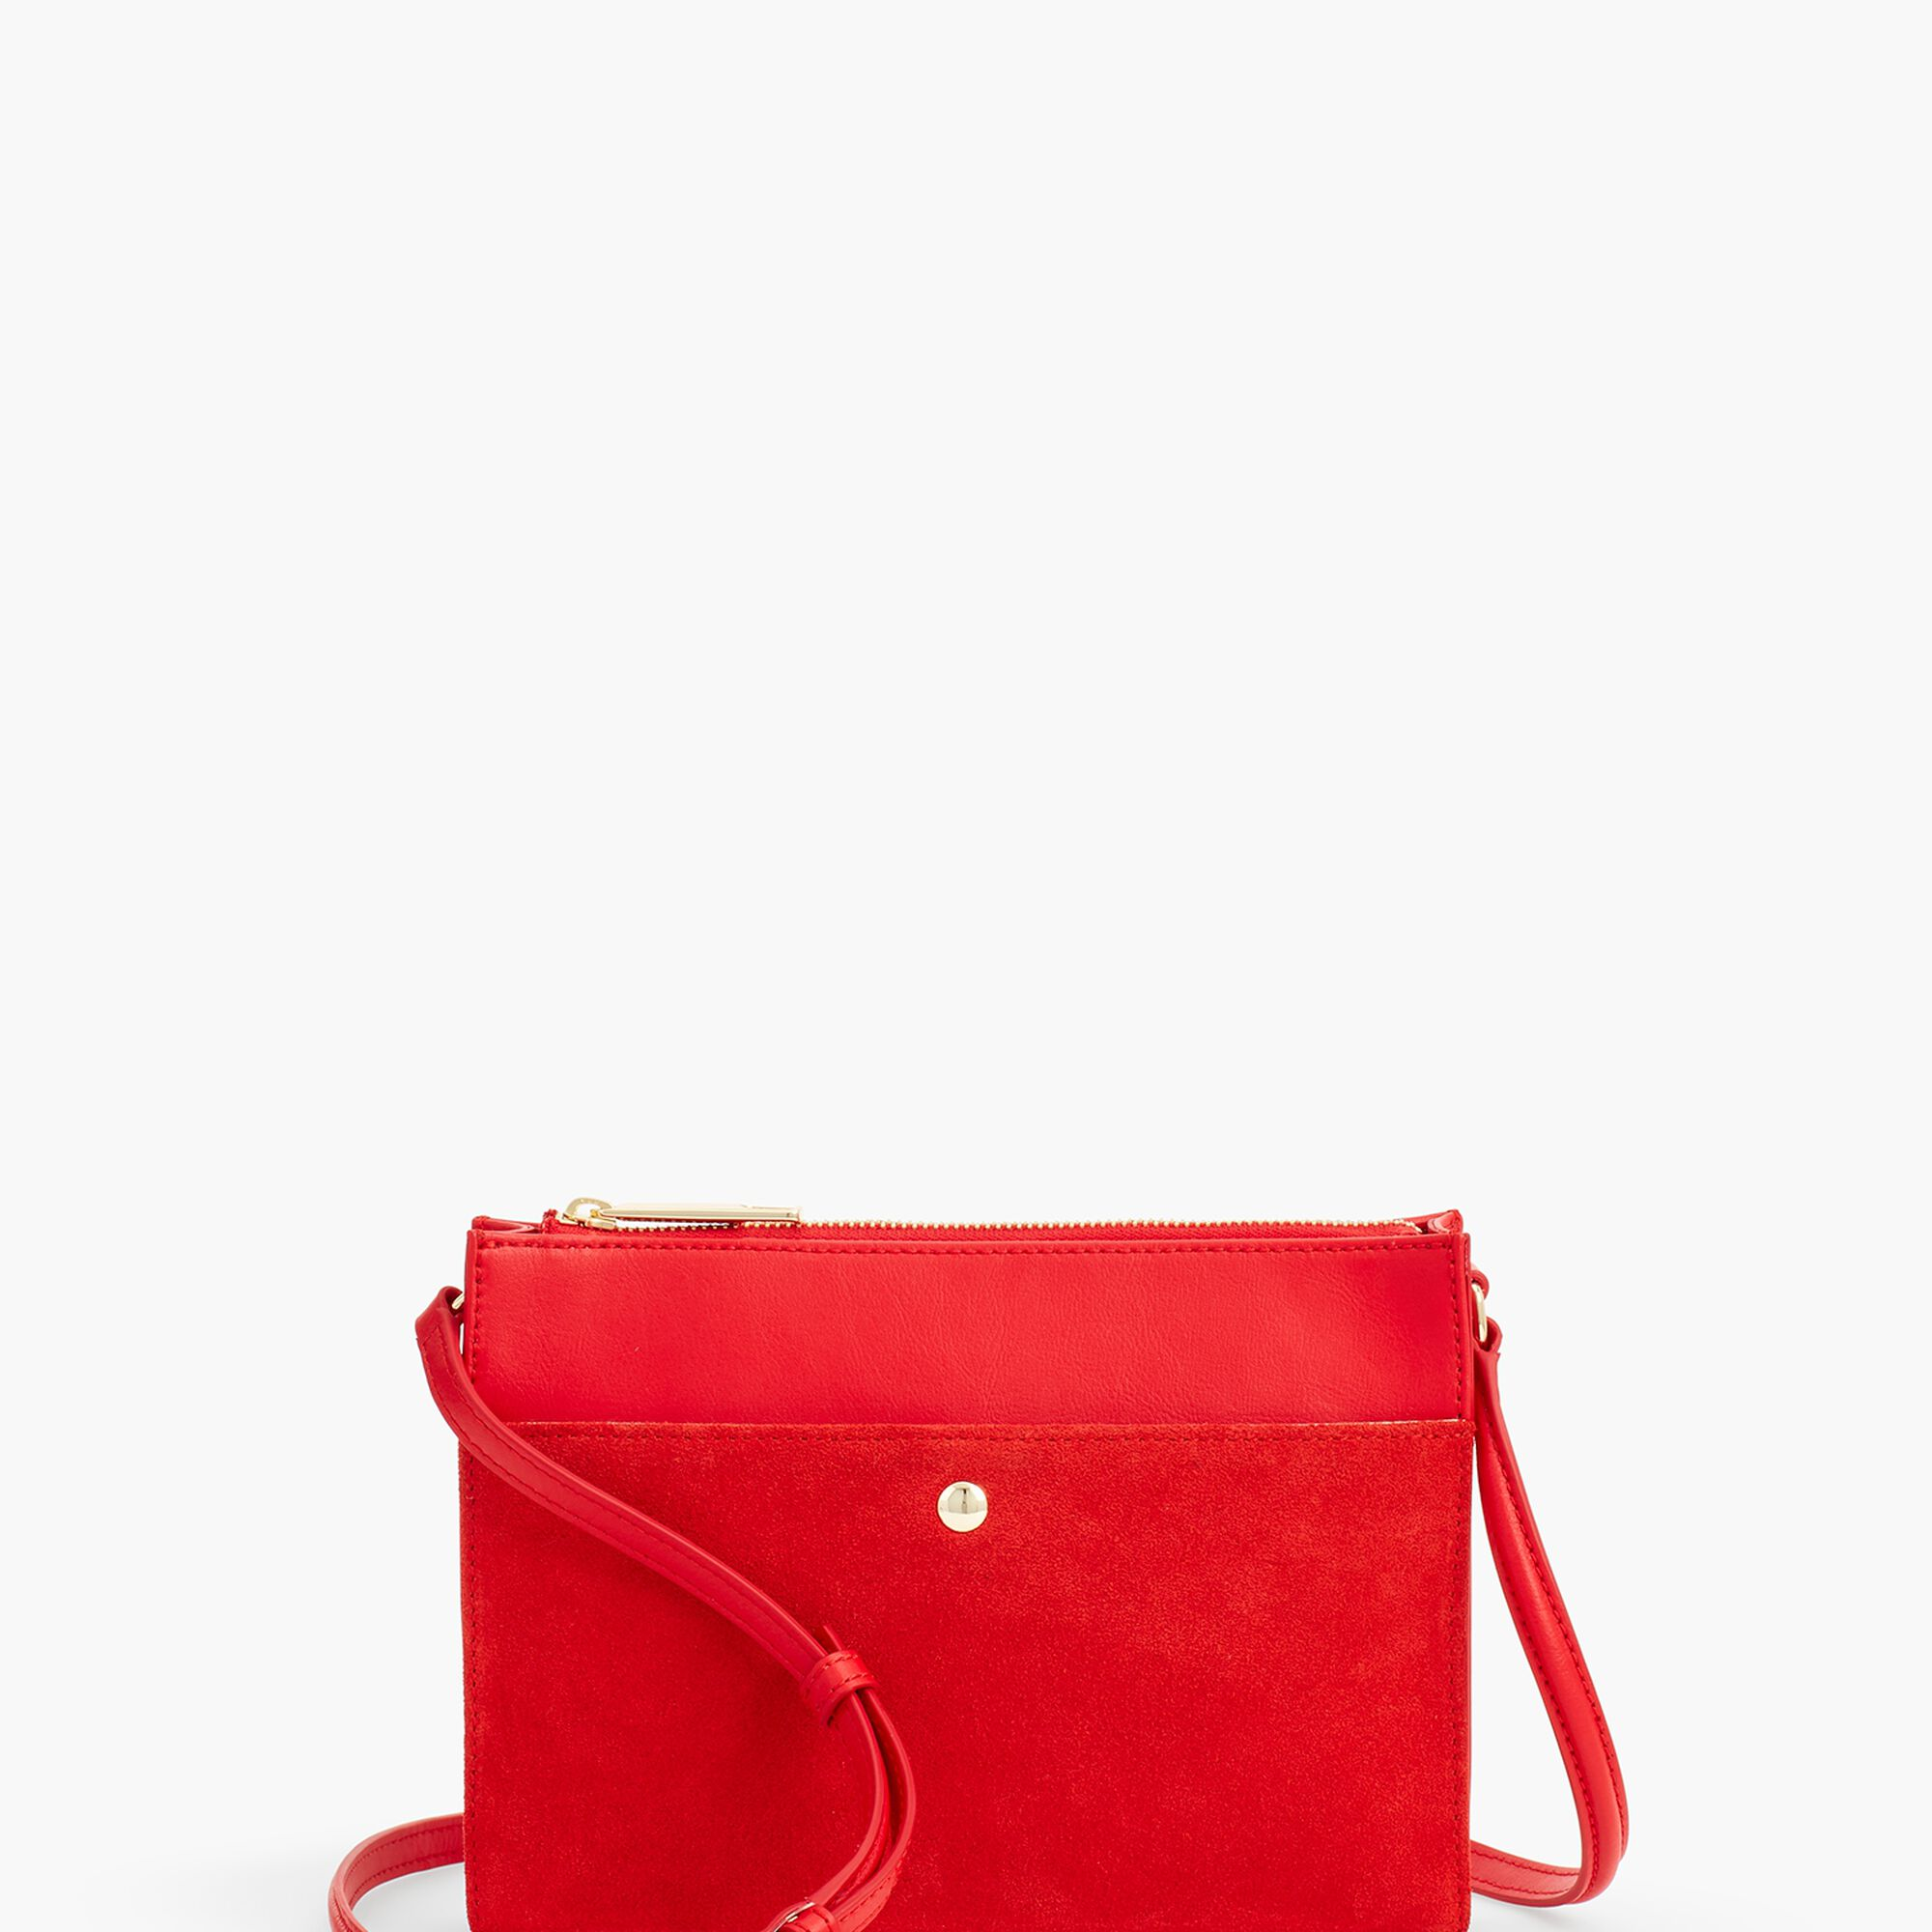 8ac52135f Foxy Luxury Celine Trotteur Small Red Calfskin Leather Crossbody. Small  Crossbody Bag Suede And Leather Opens A New Window. Small Crossbody Bag  Suede And ...